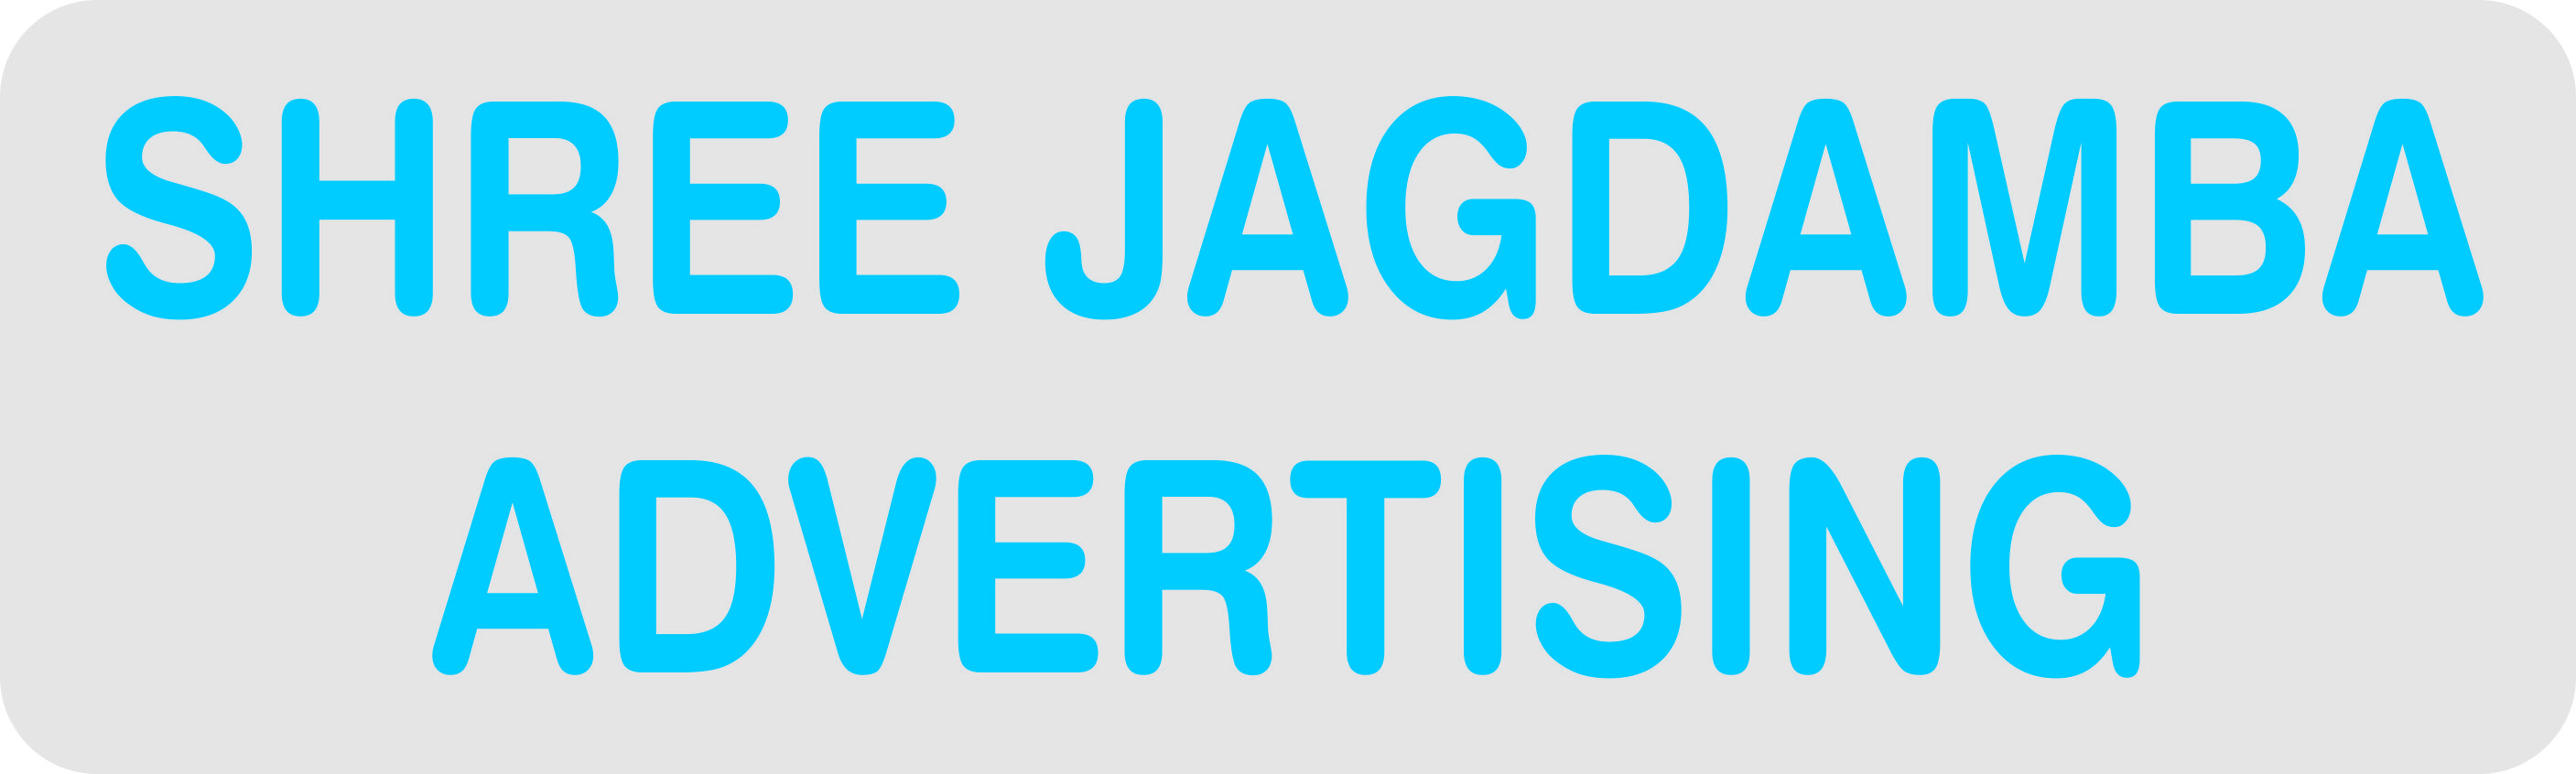 Shree Jagdamba Advertising